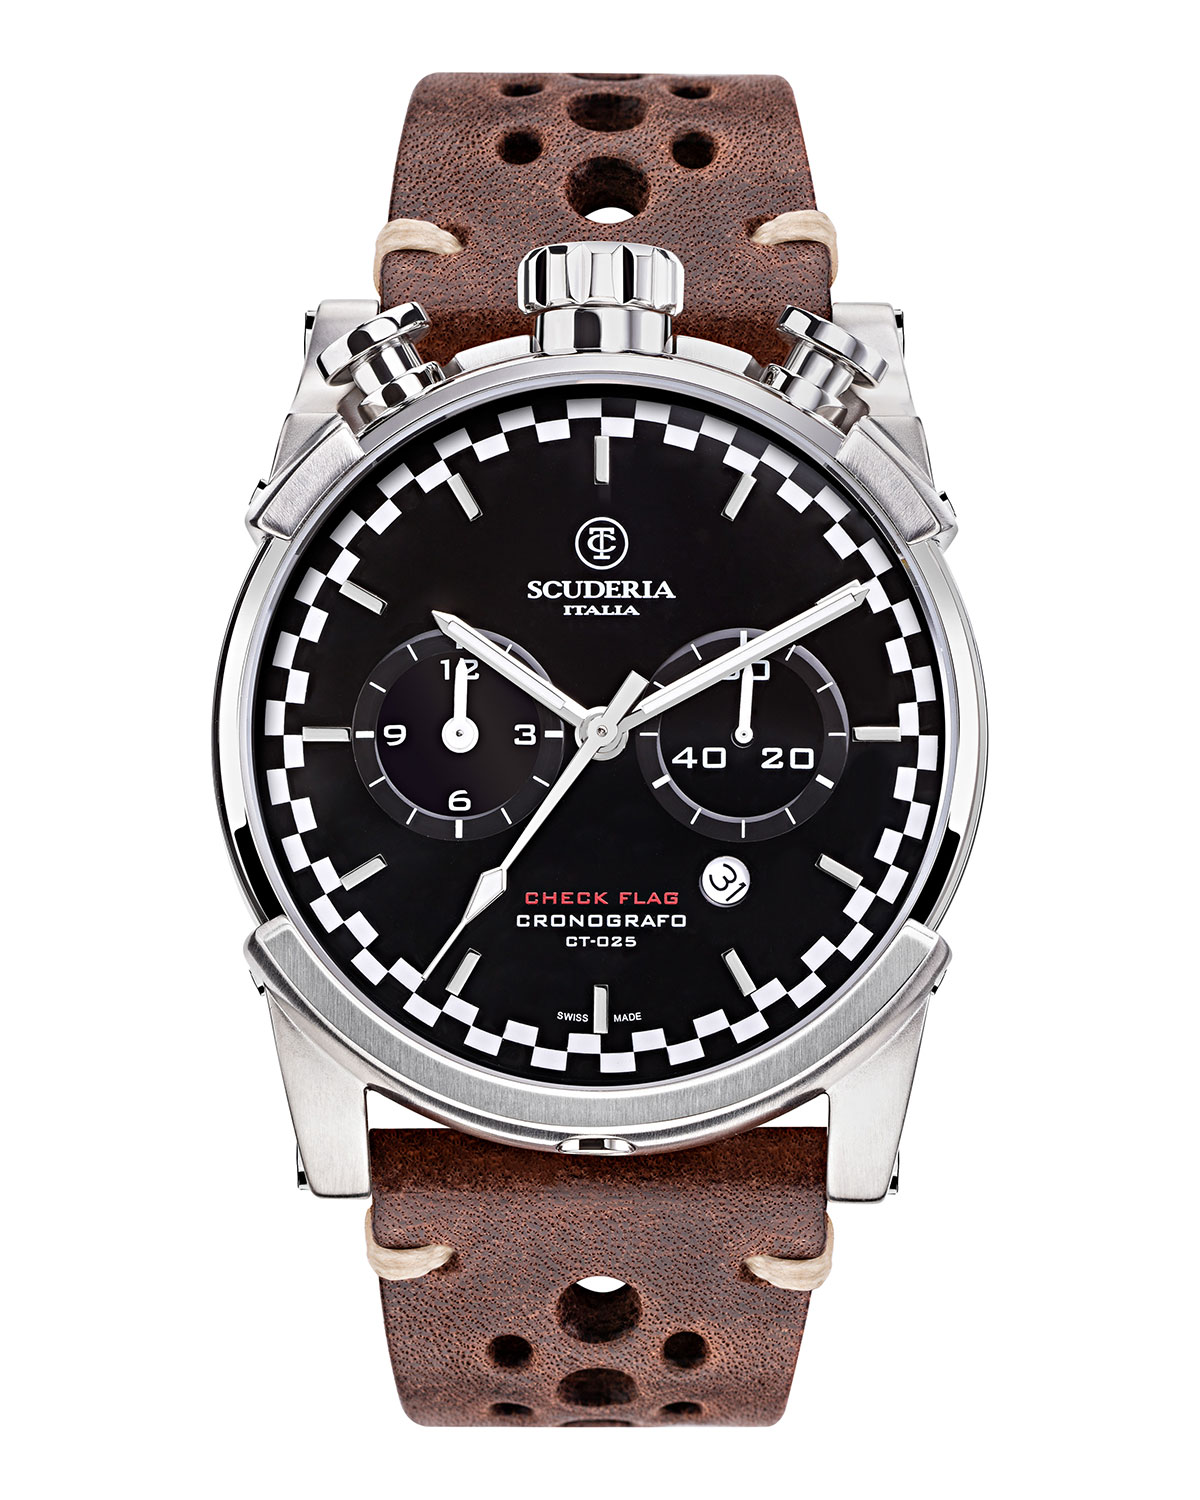 Men's 44mm Check Flag Chronograph Leather Watch